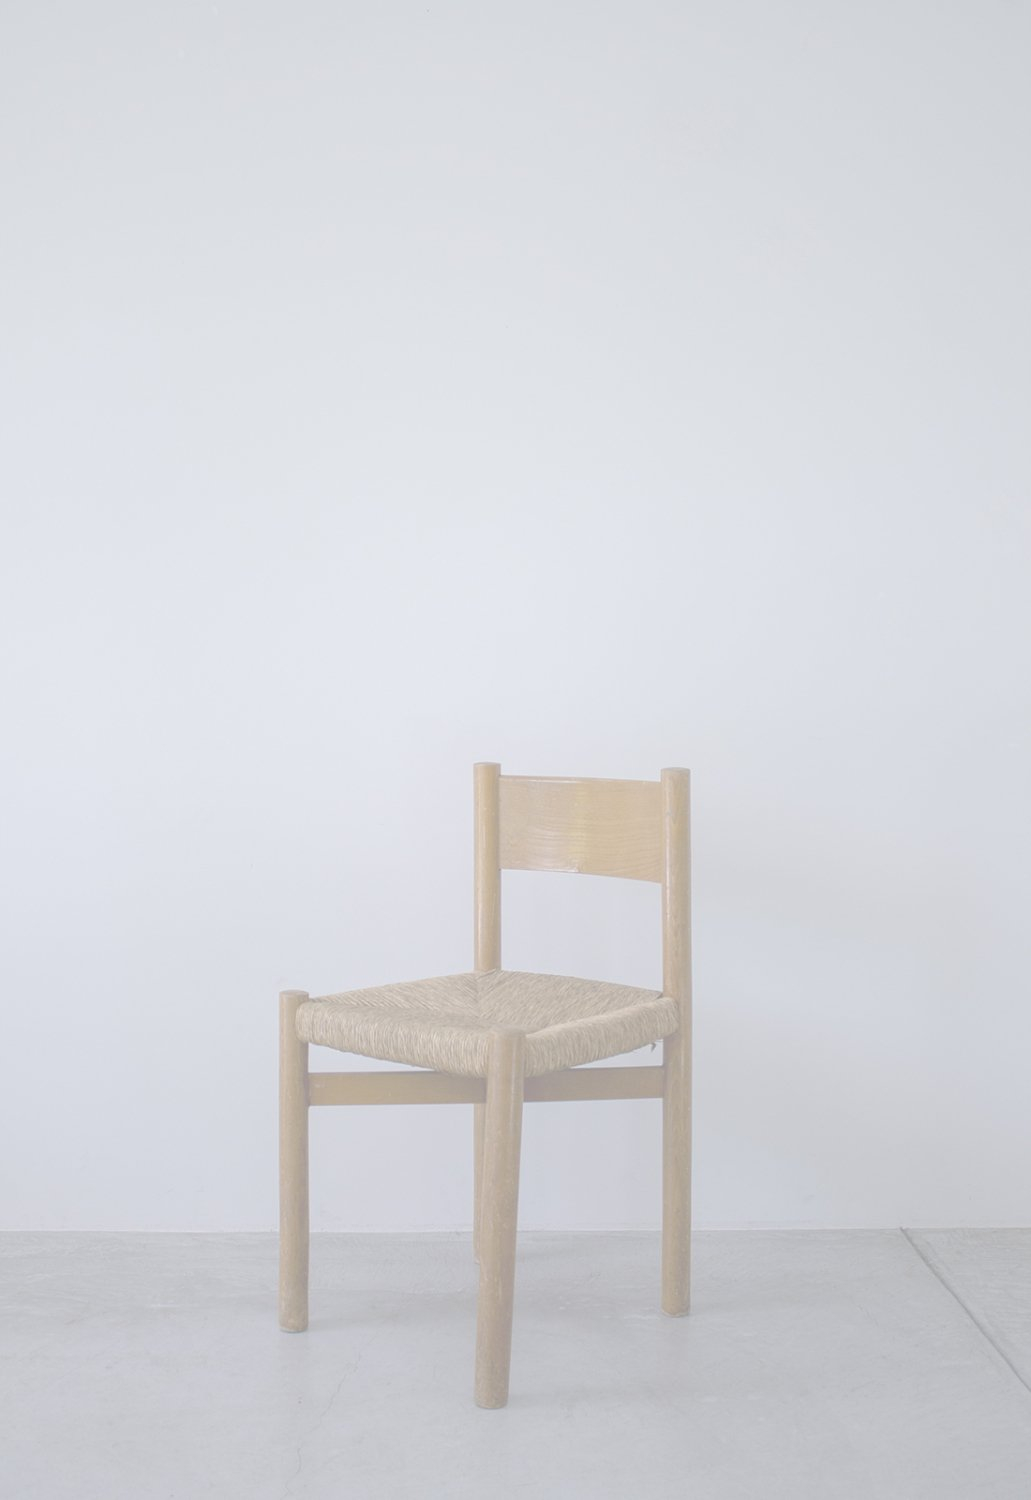 Charlotte Perriand -Meribel Chair